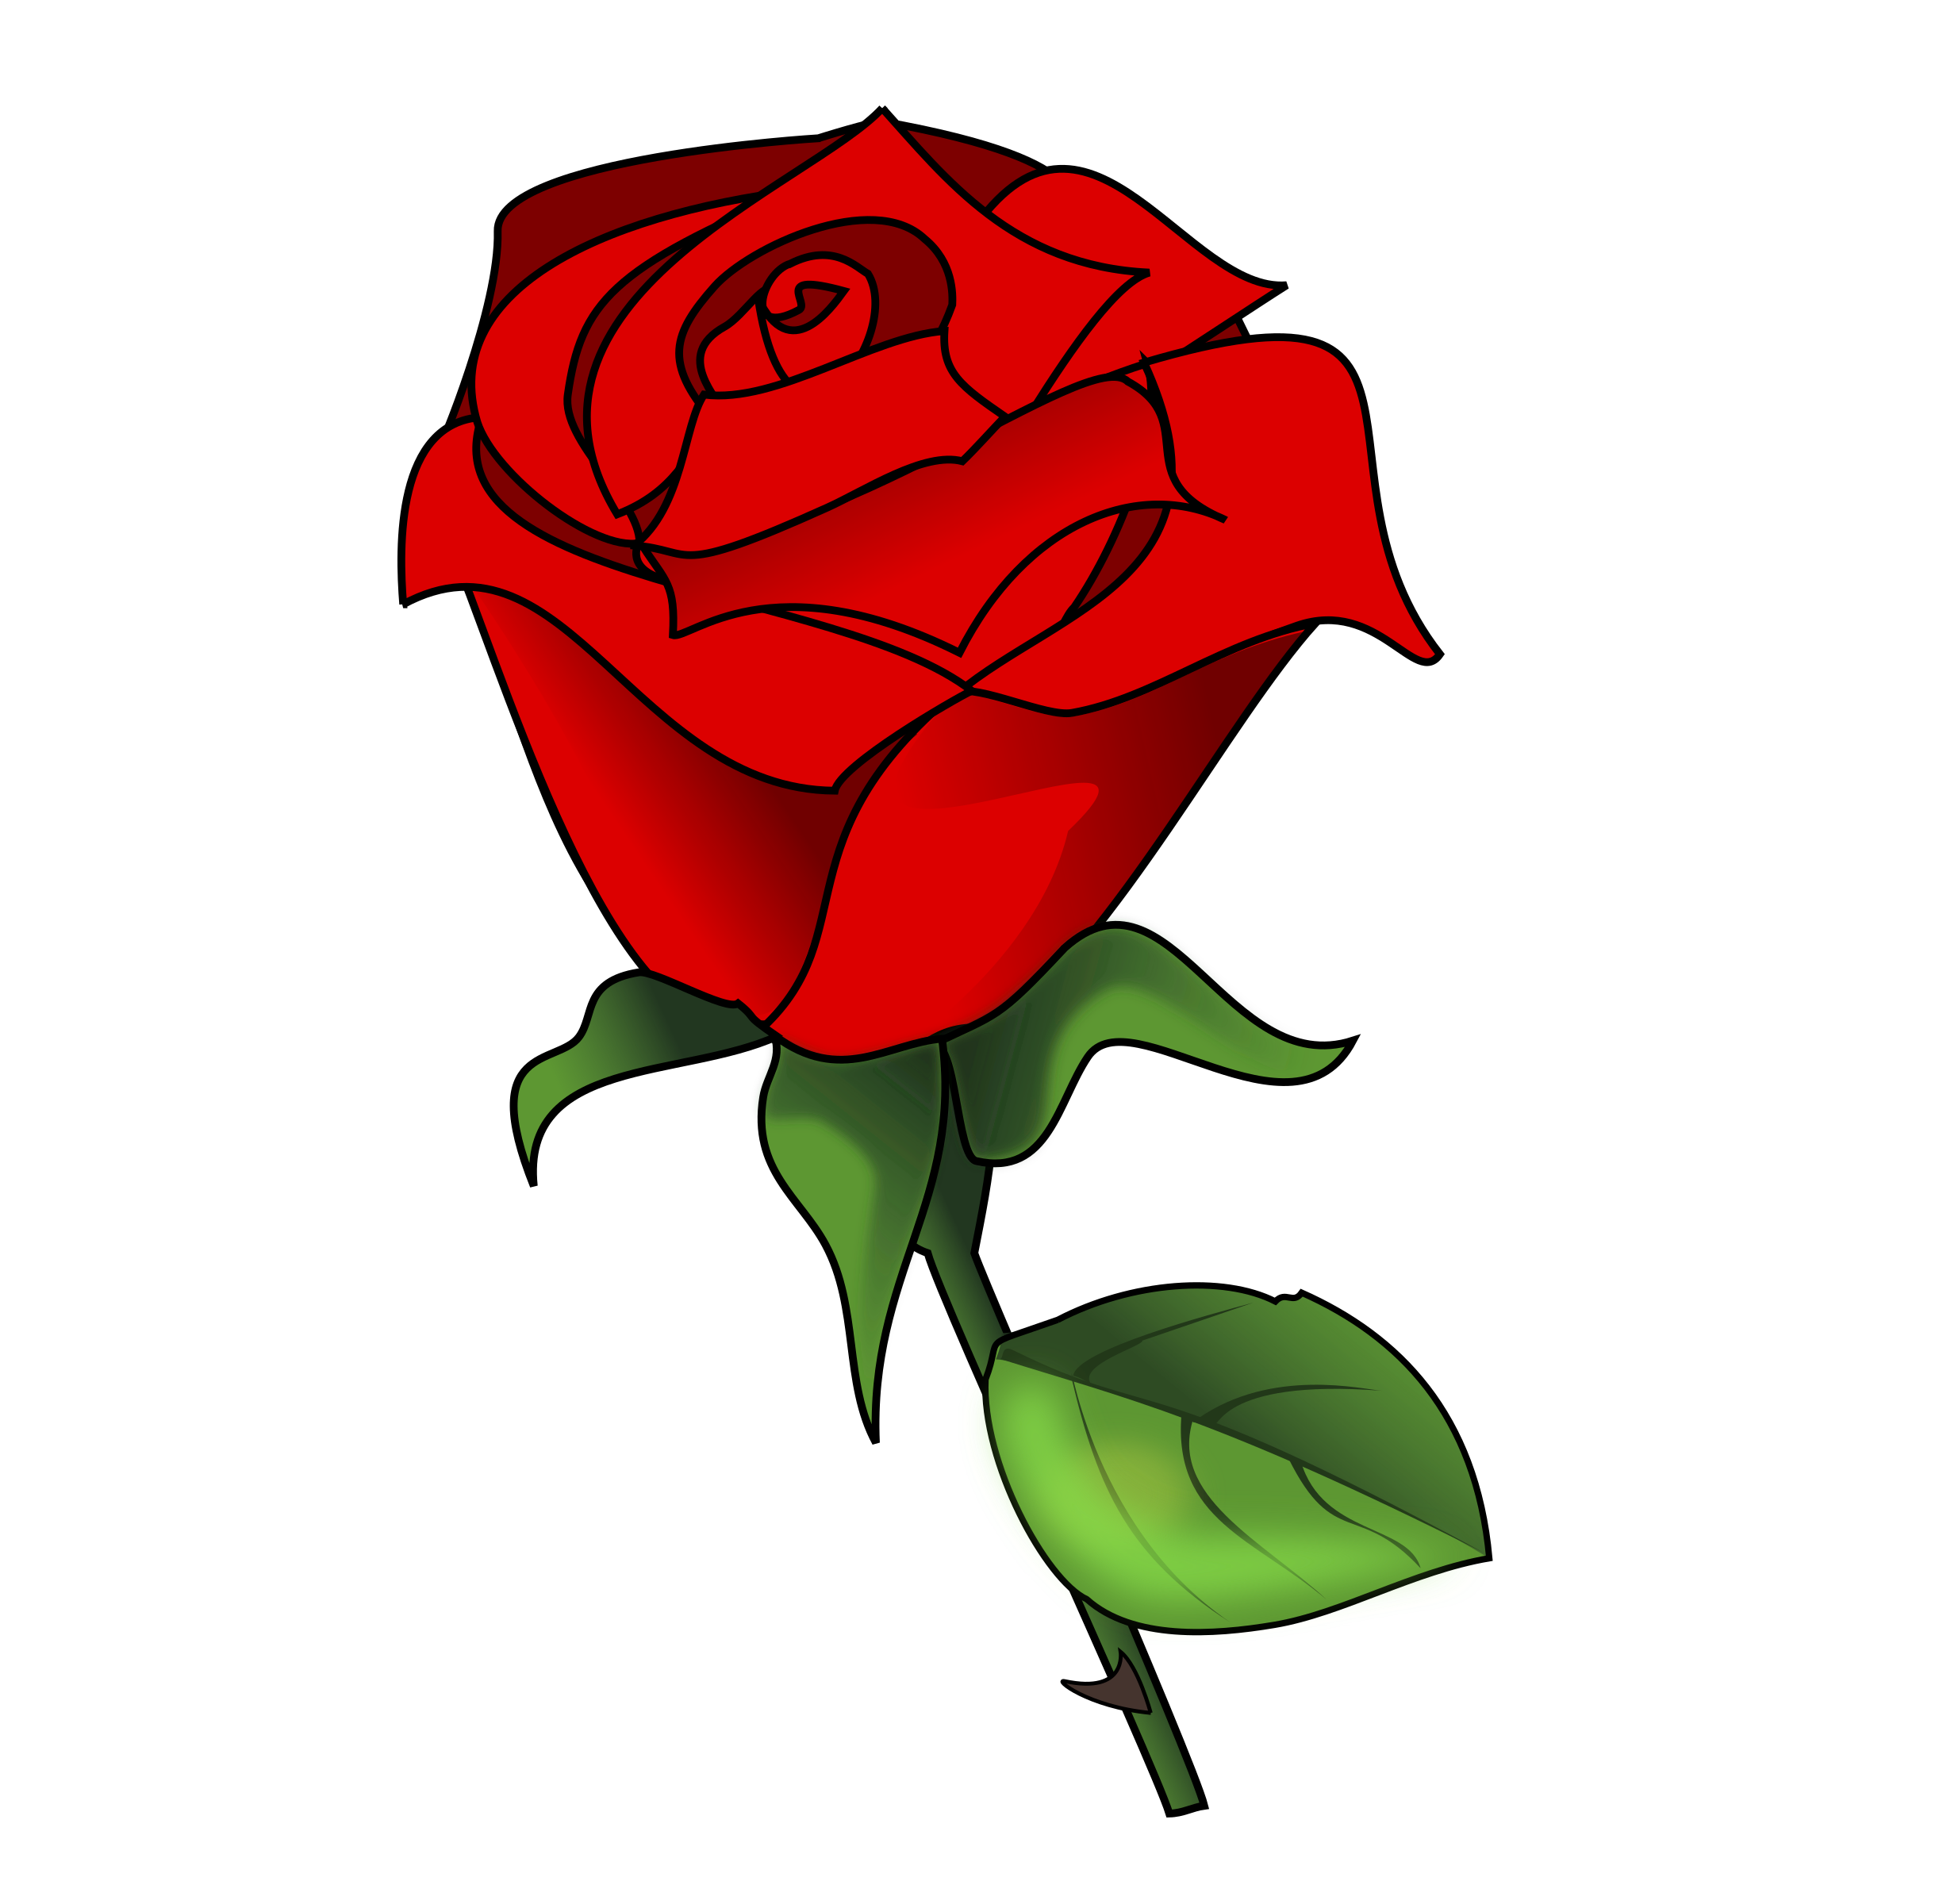 Picture clipart rose. Flower at getdrawings com